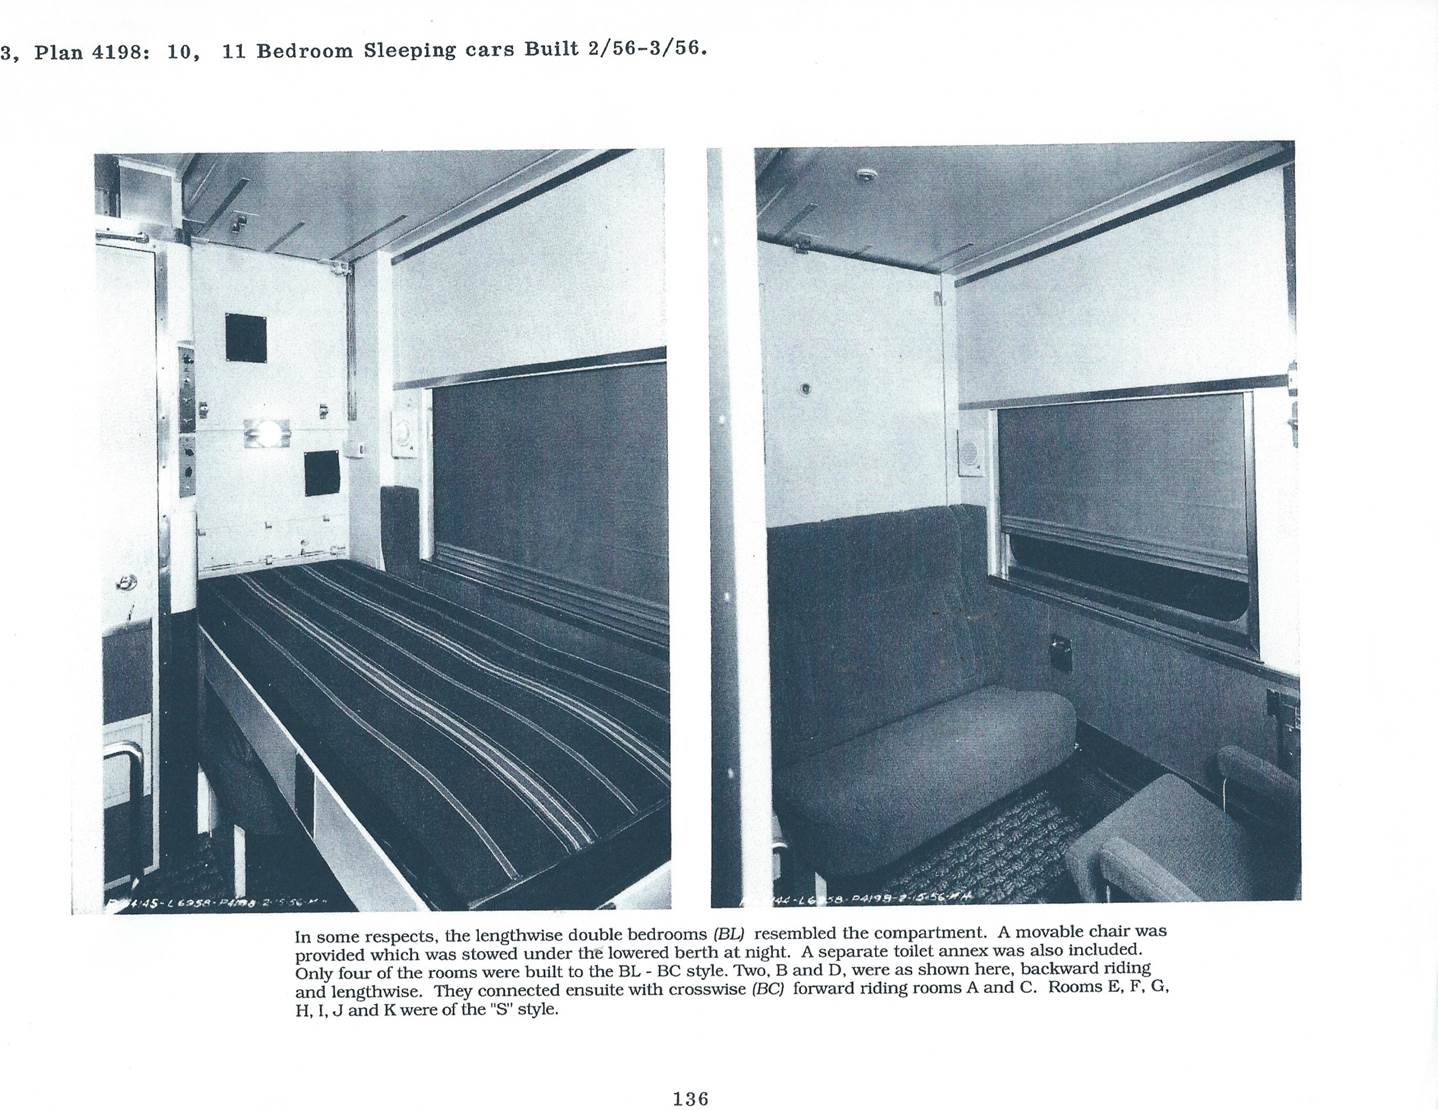 Inside of Train Car